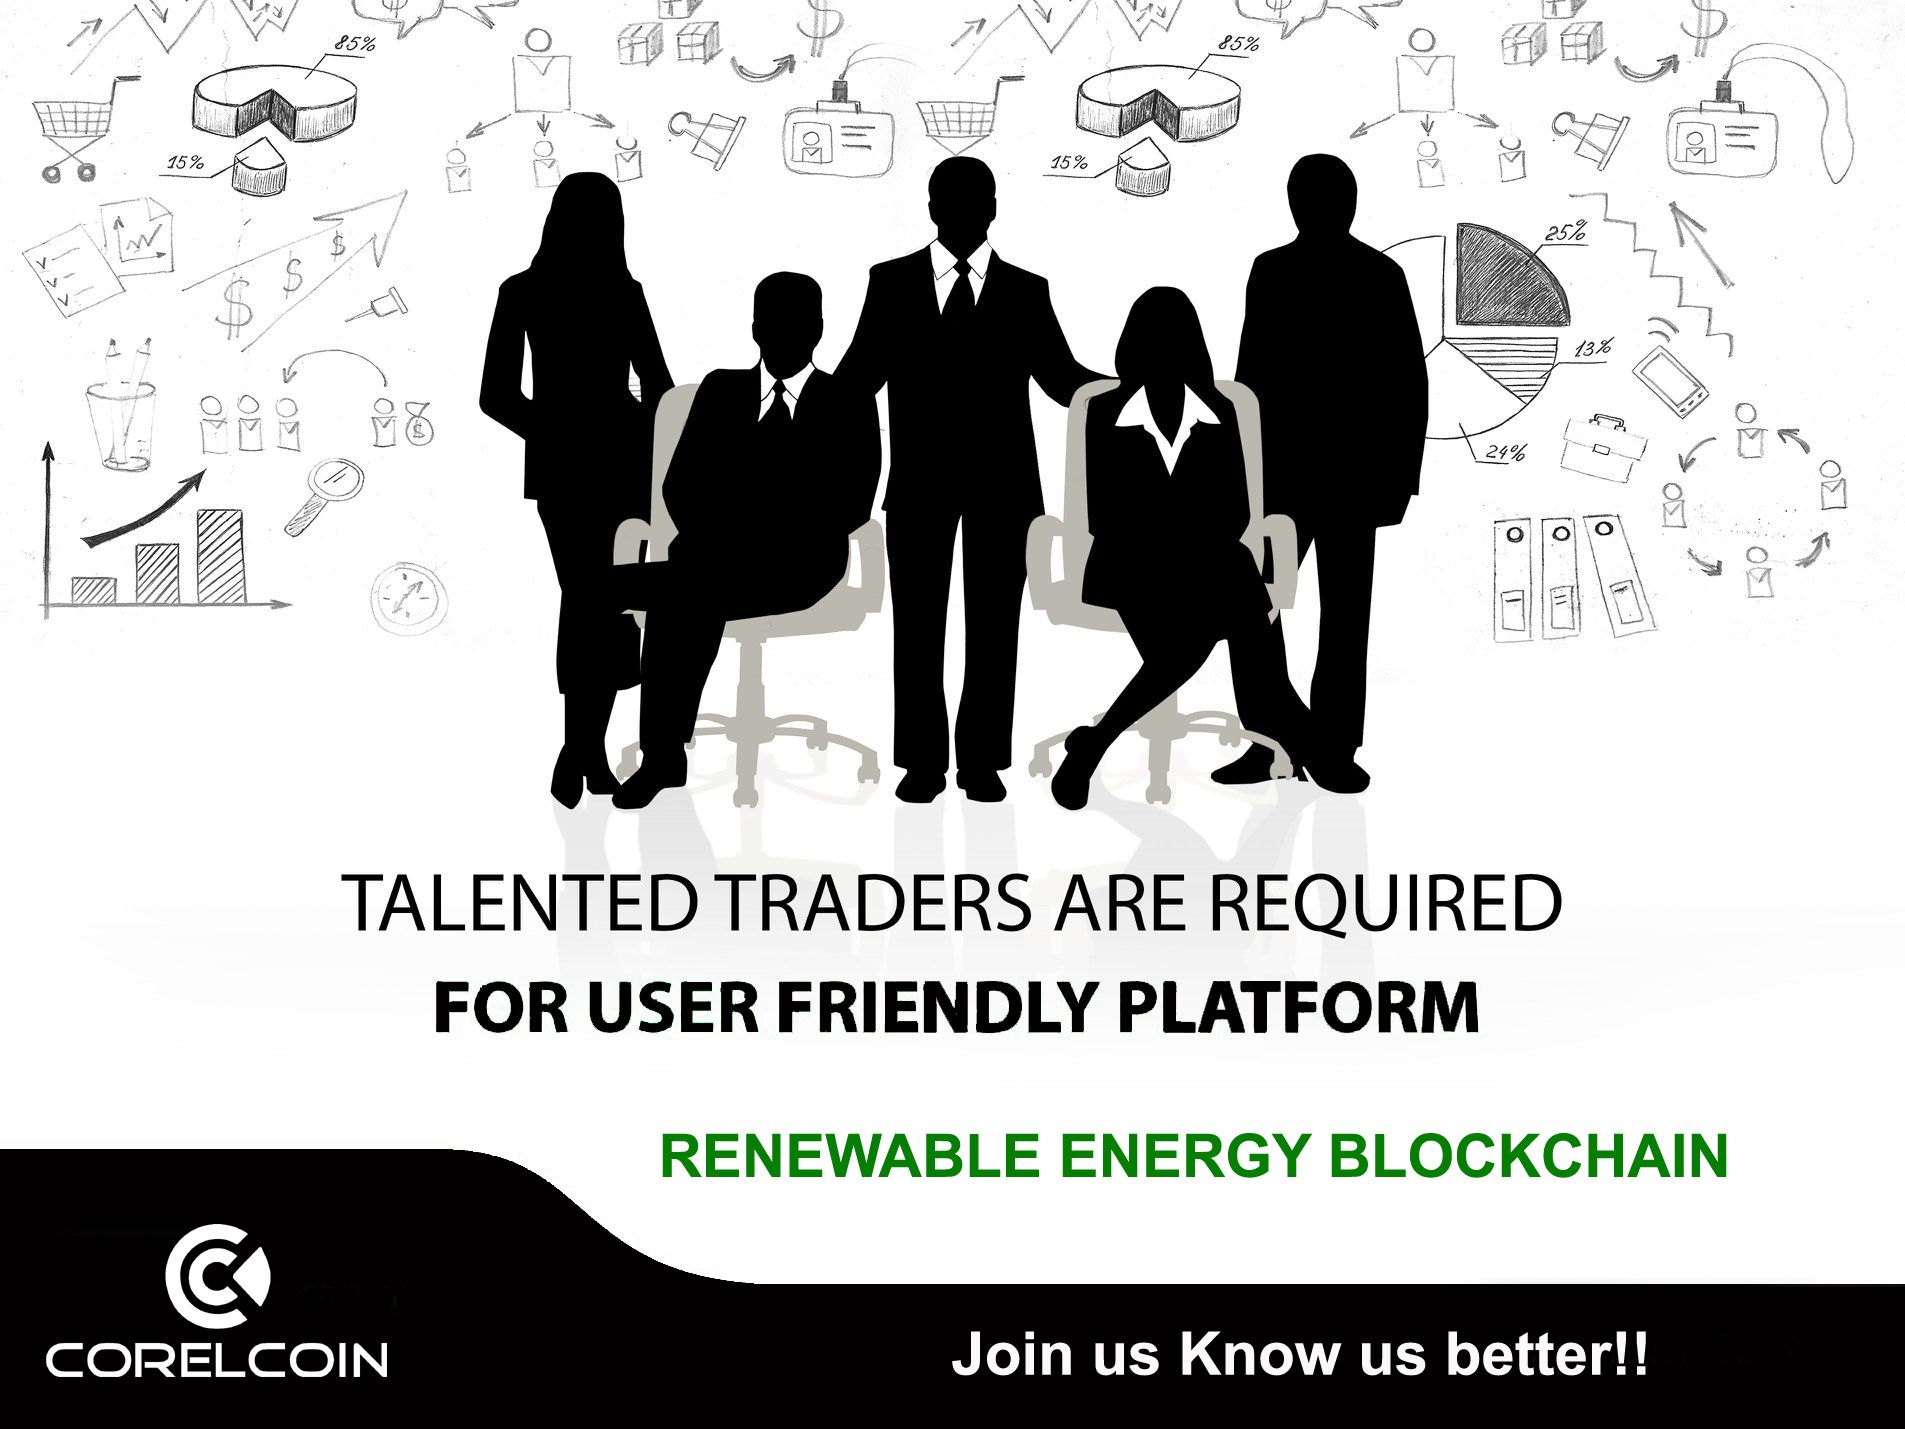 Talented Traders Are Required For UserFriendly Platform